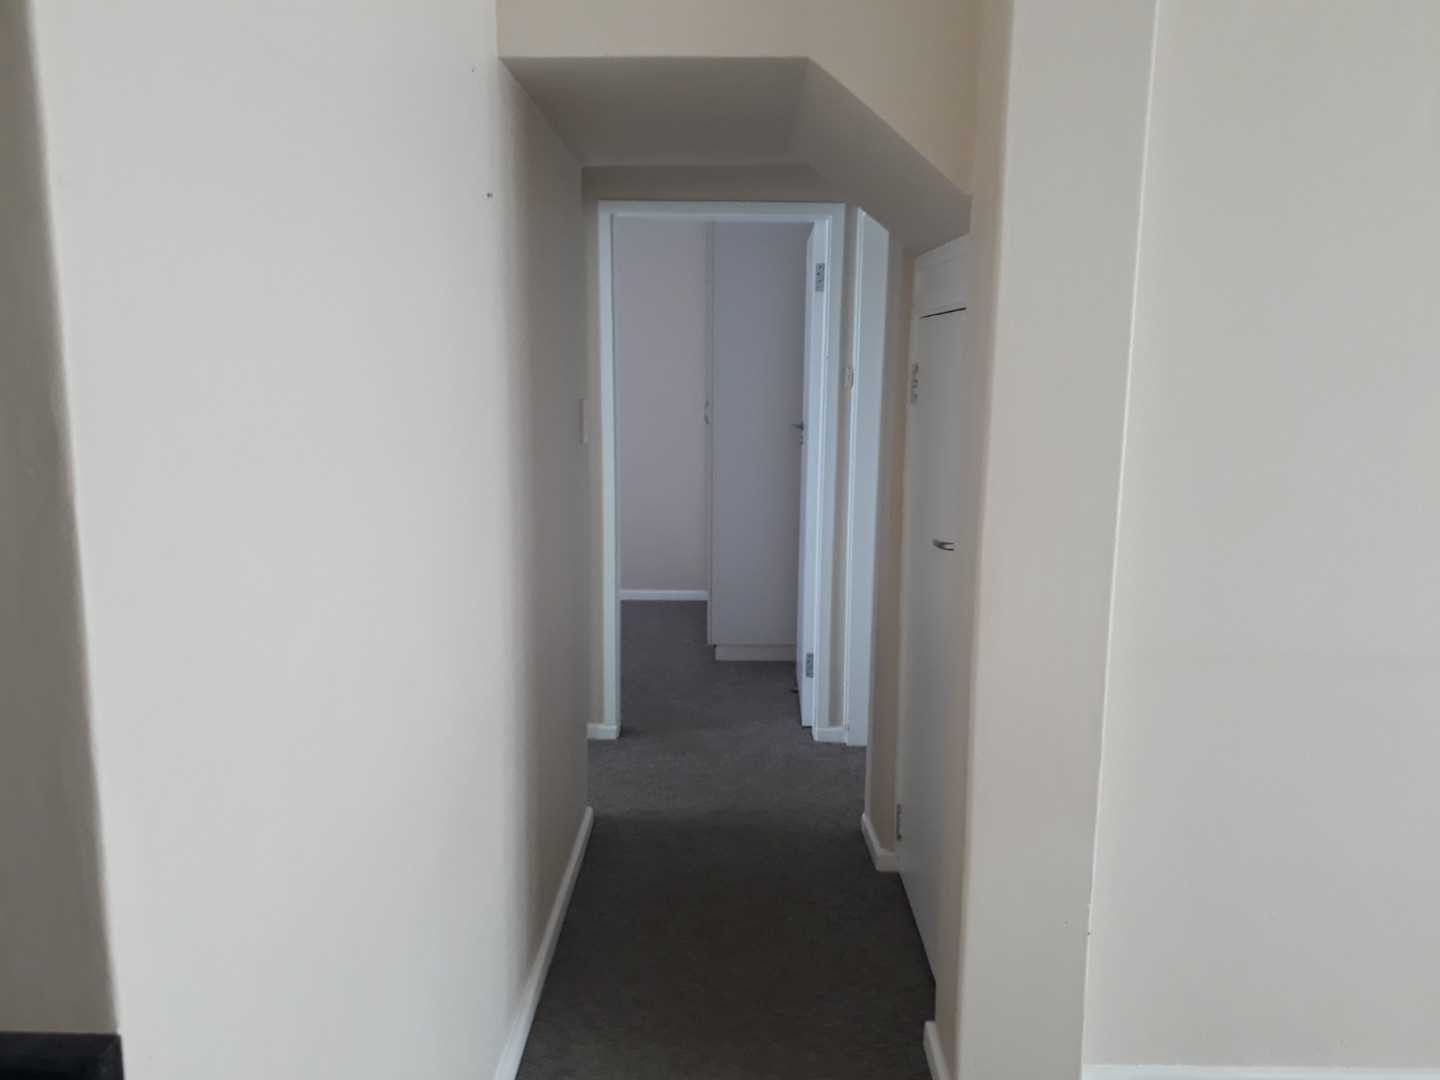 Passage leading to main bathroom and two bedrooms of which one is another en suite